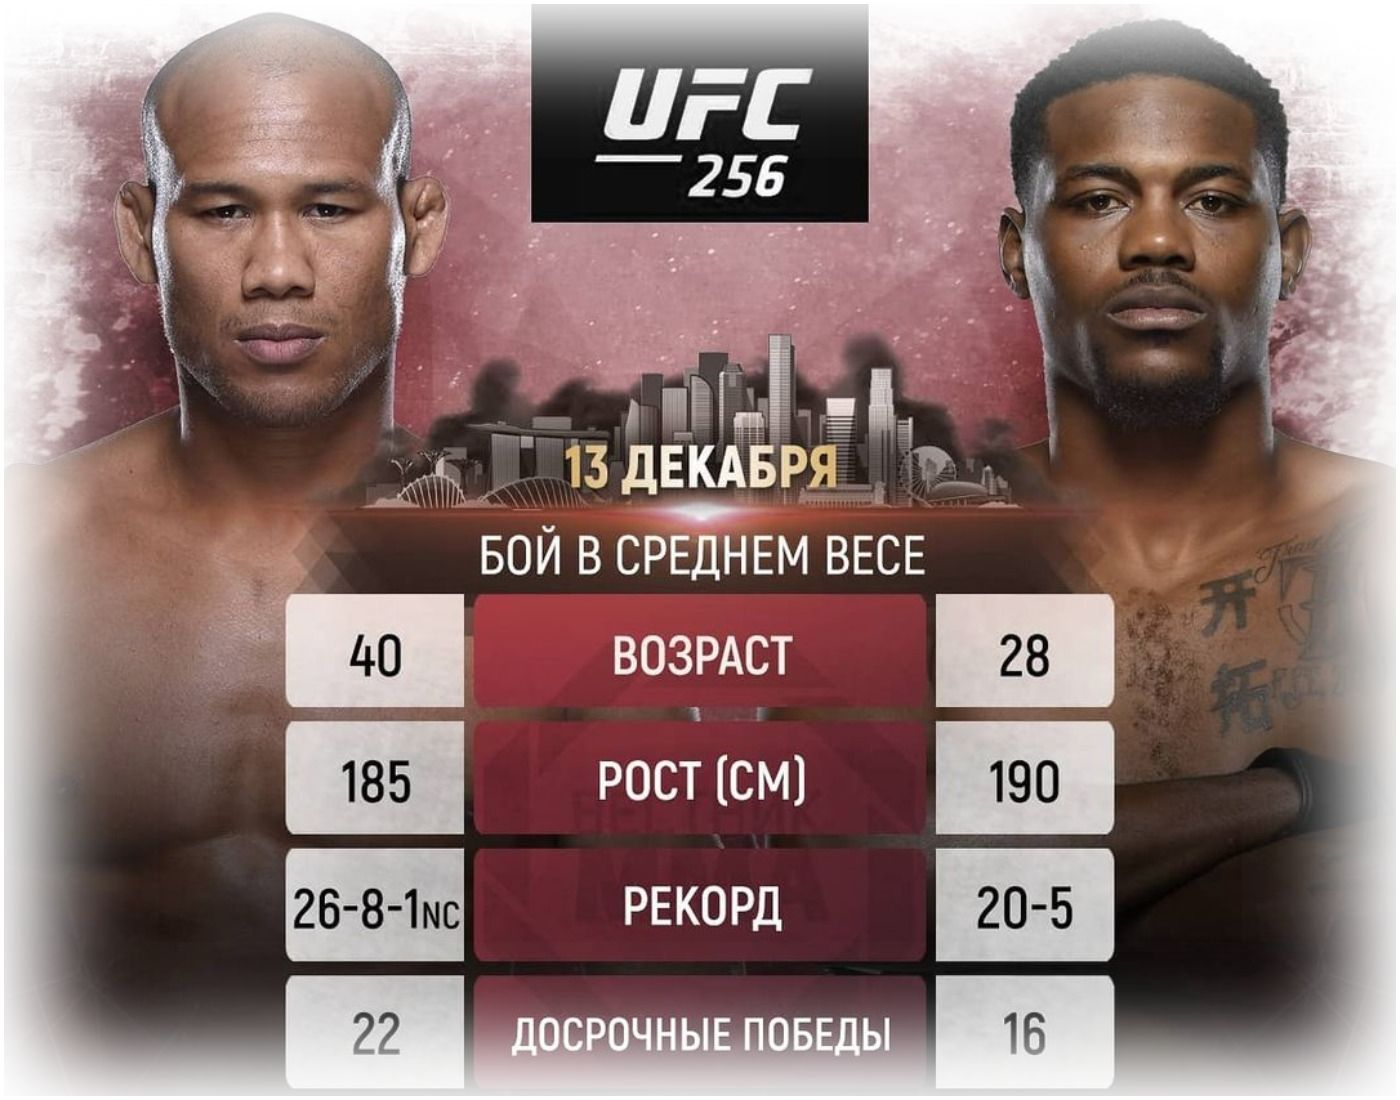 video-boya-kevin-holland-ronaldo-souza-ufc-256